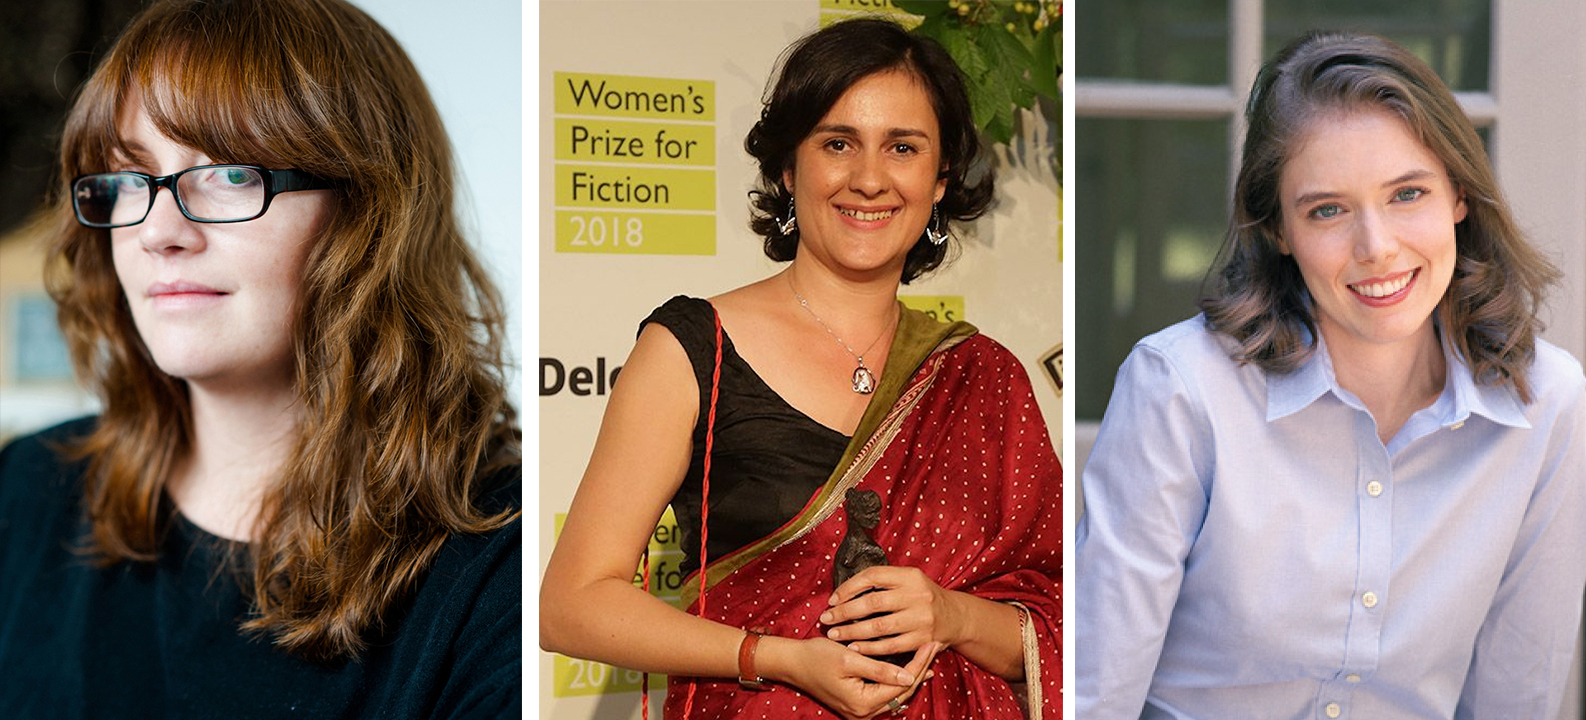 Photo of previous Women's Prize winning authors